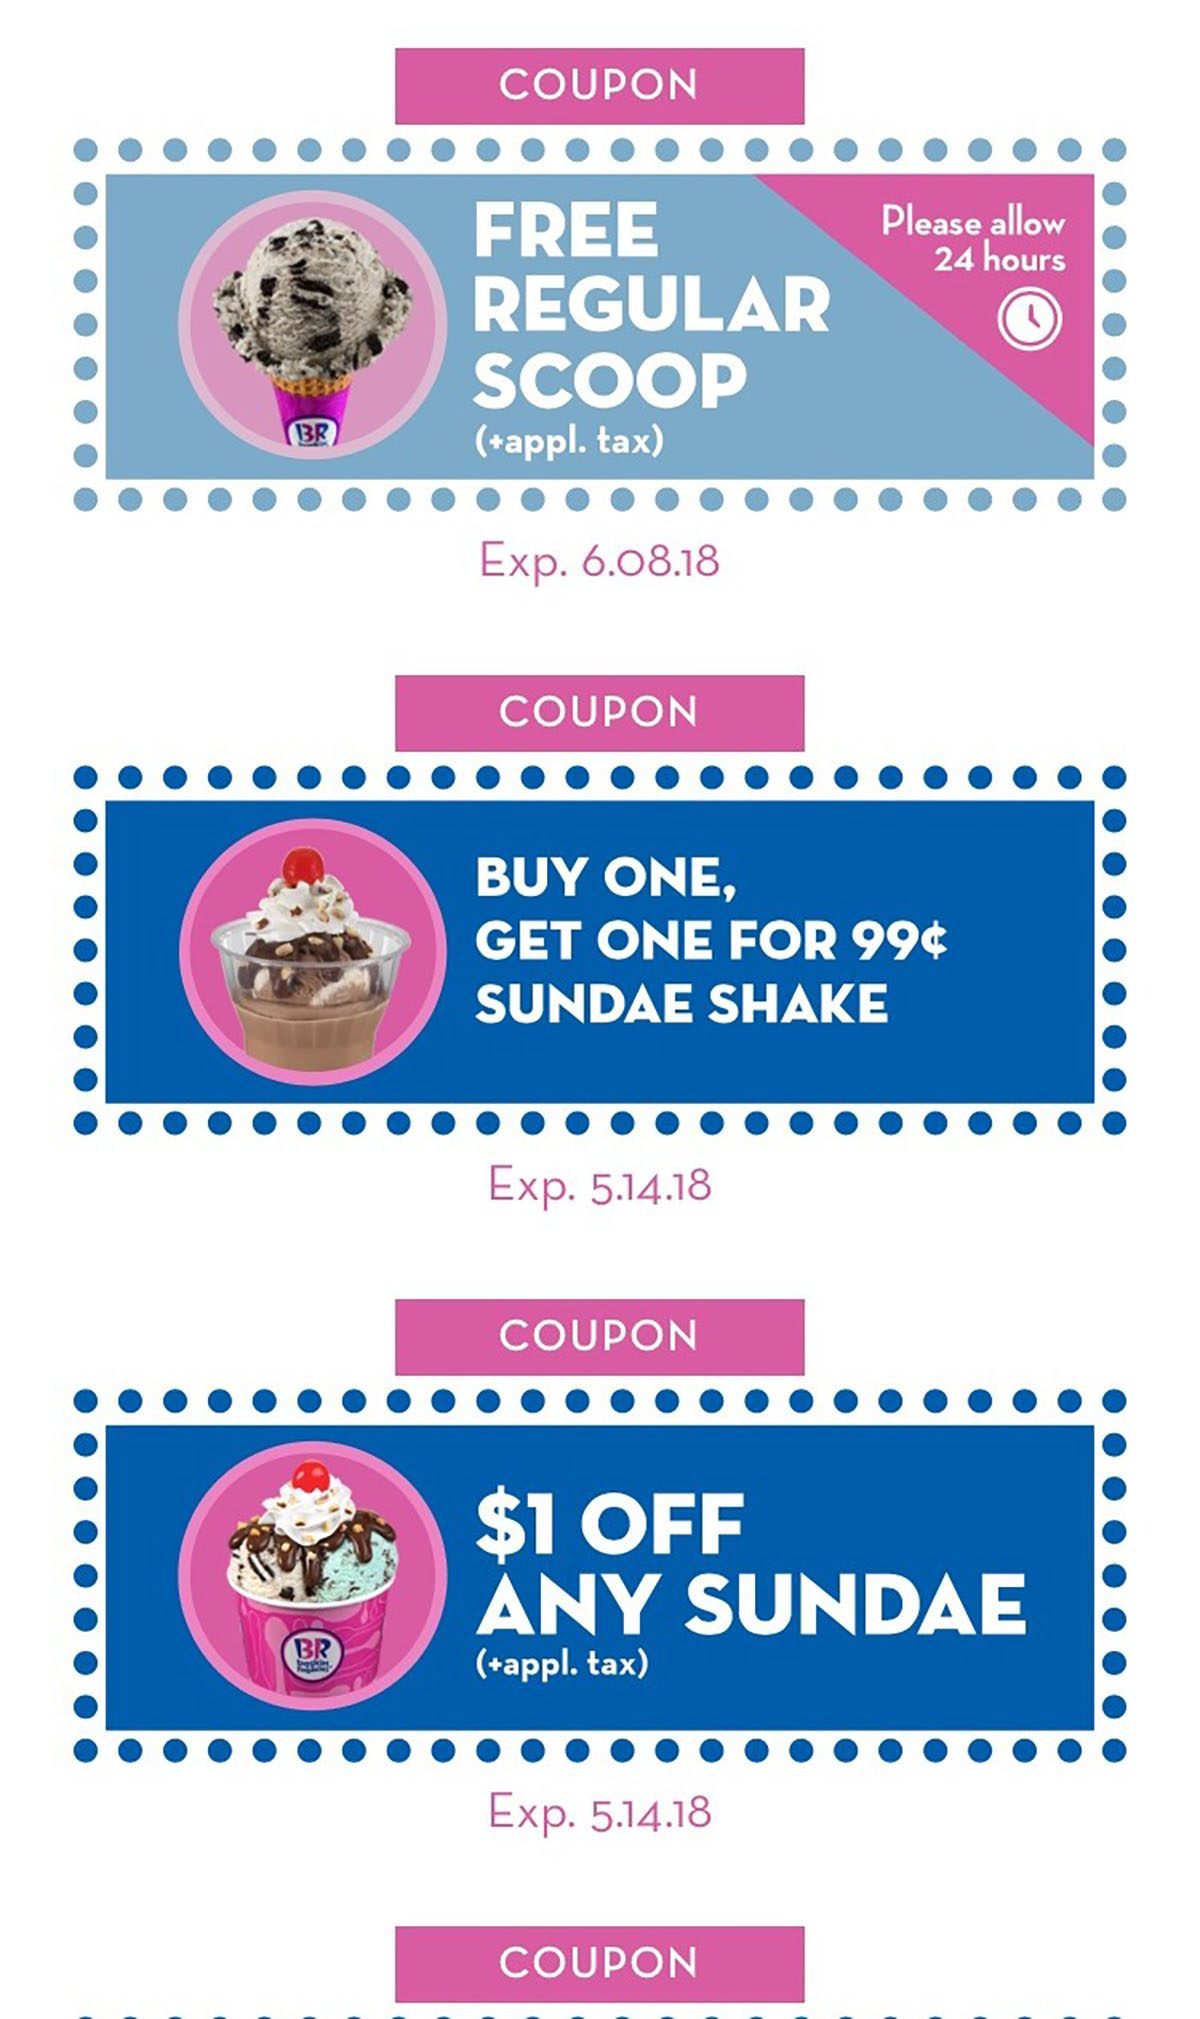 How to Get Free Ice Cream from Baskin-Robbins with Just a Swipe